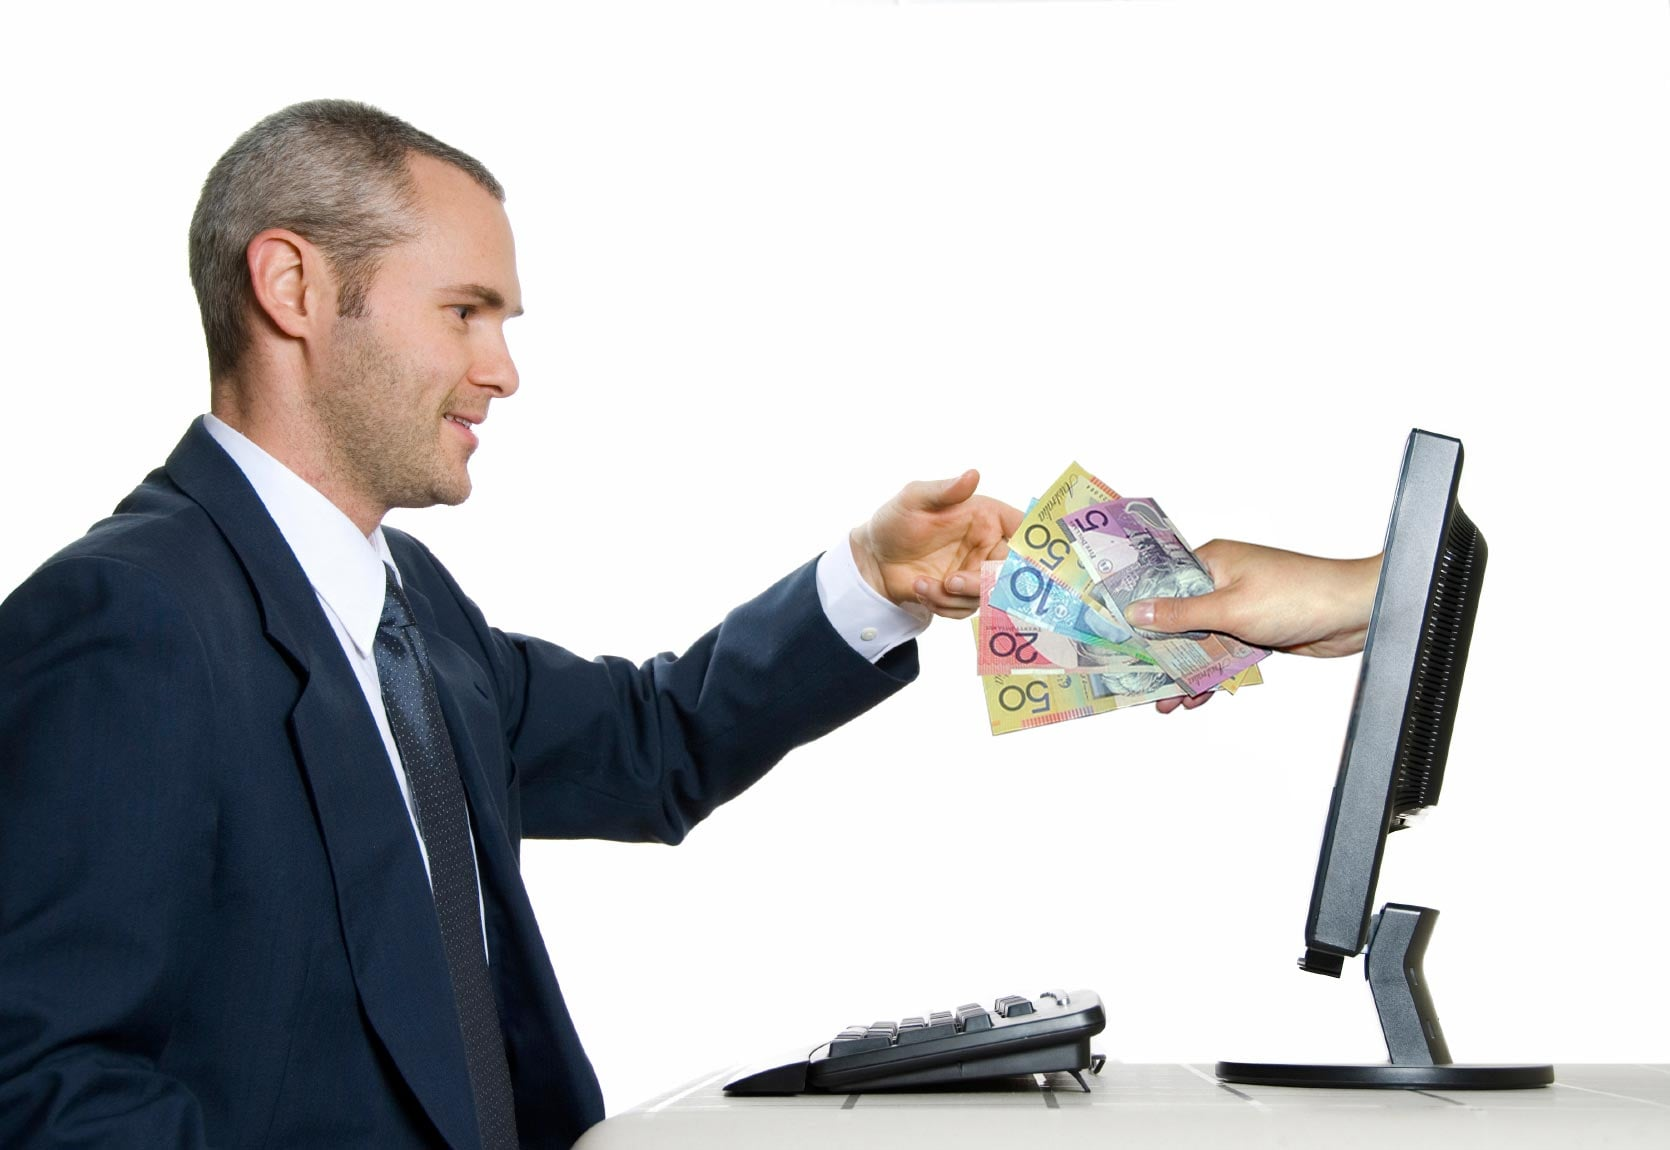 Payday loan in smyrna ga image 7